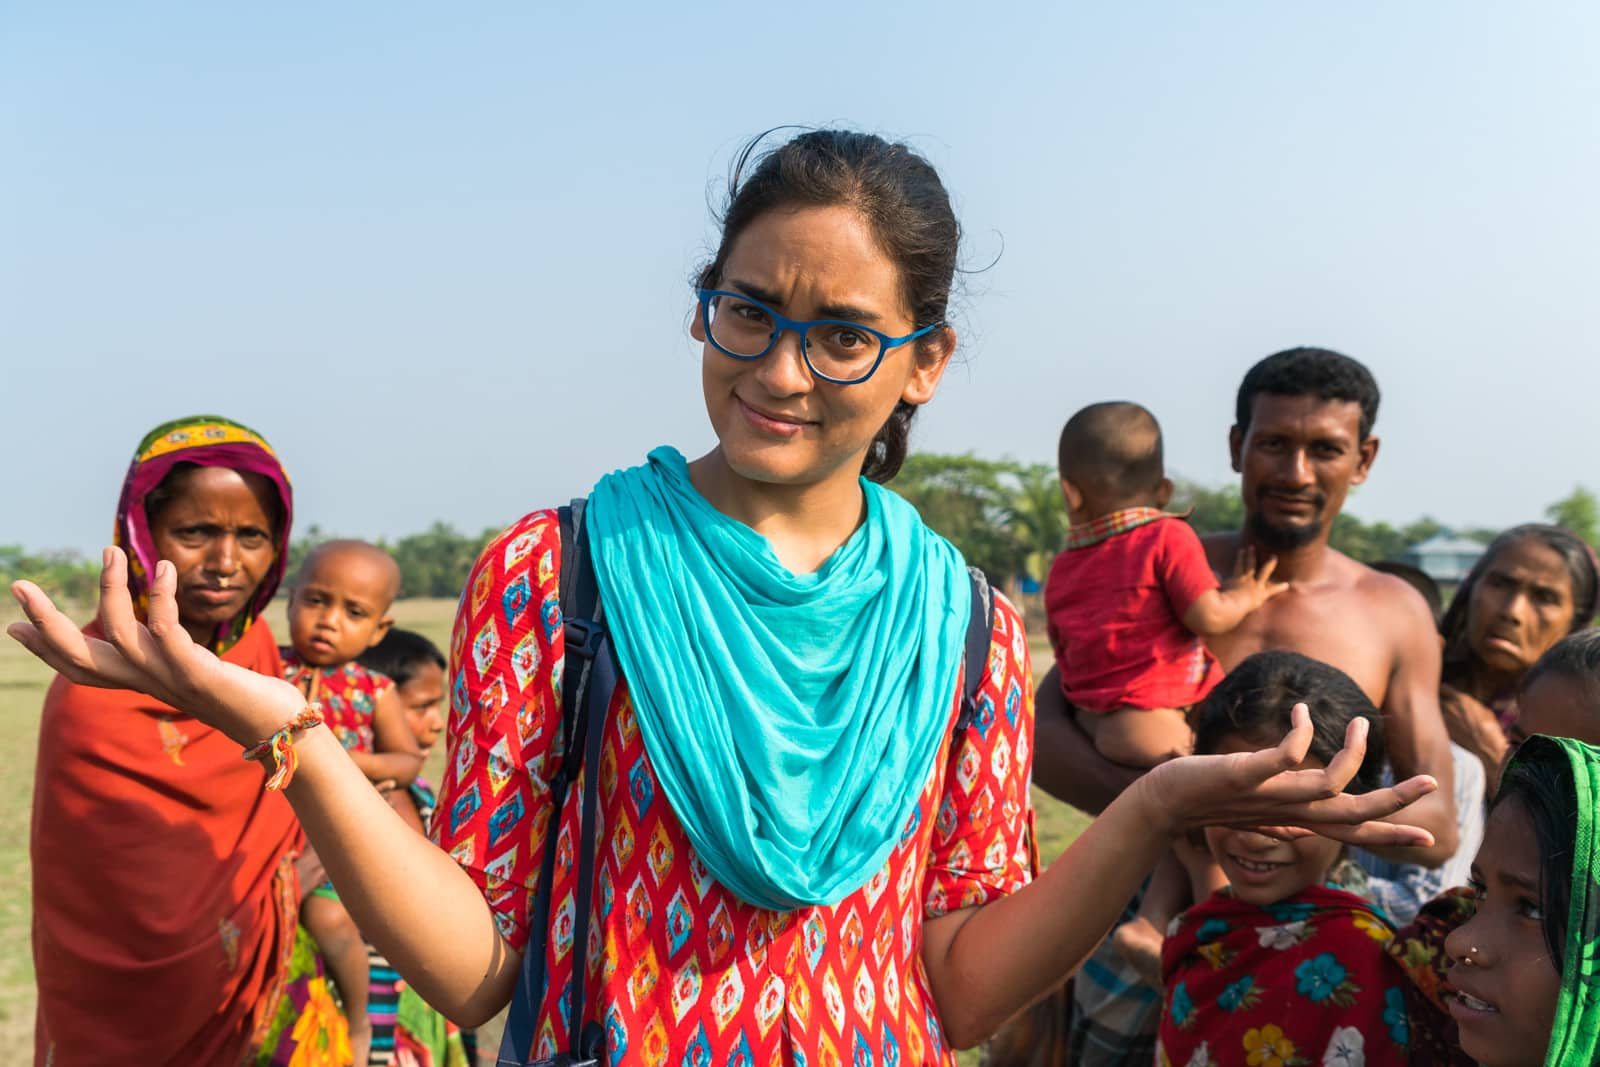 New continent - Alex with glasses in Bangladesh - Lost With Purpose travel blog